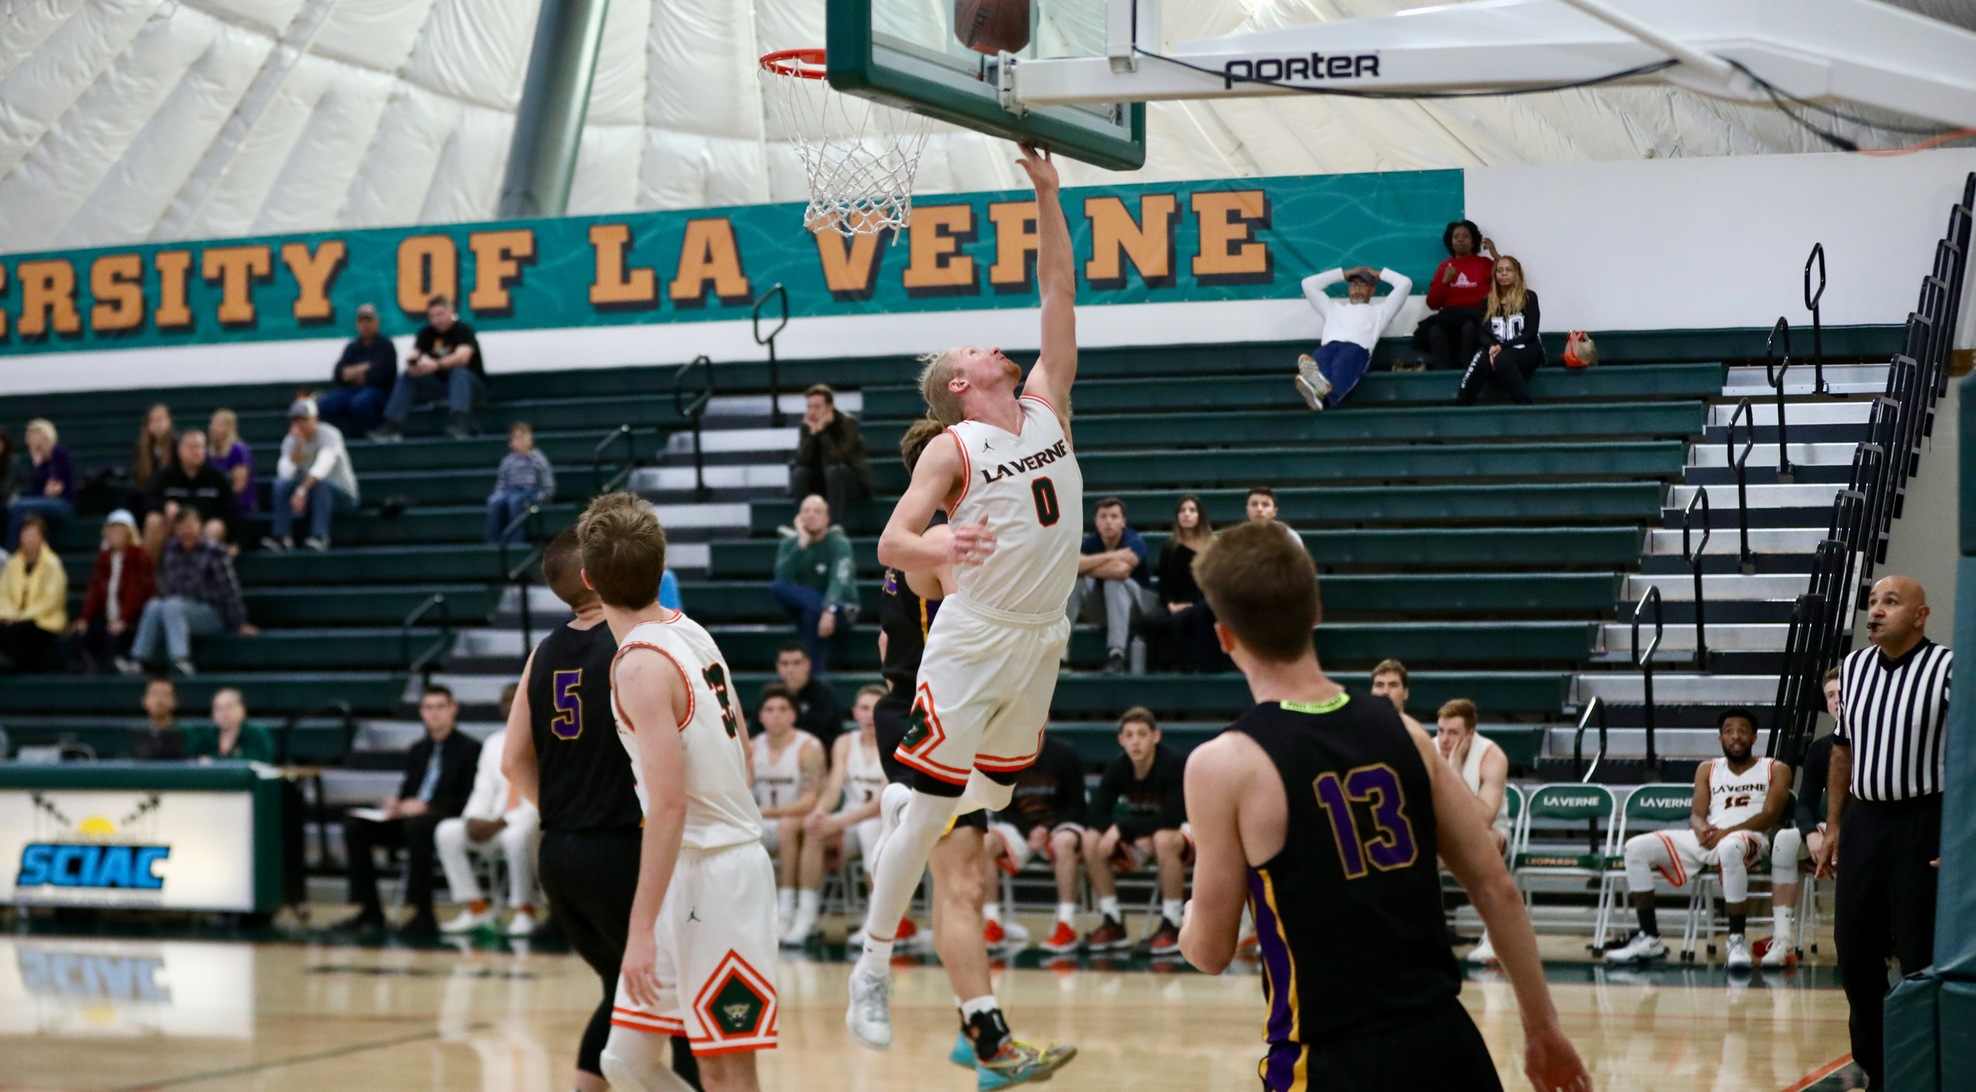 Leopards drop non-conference game to UCSC